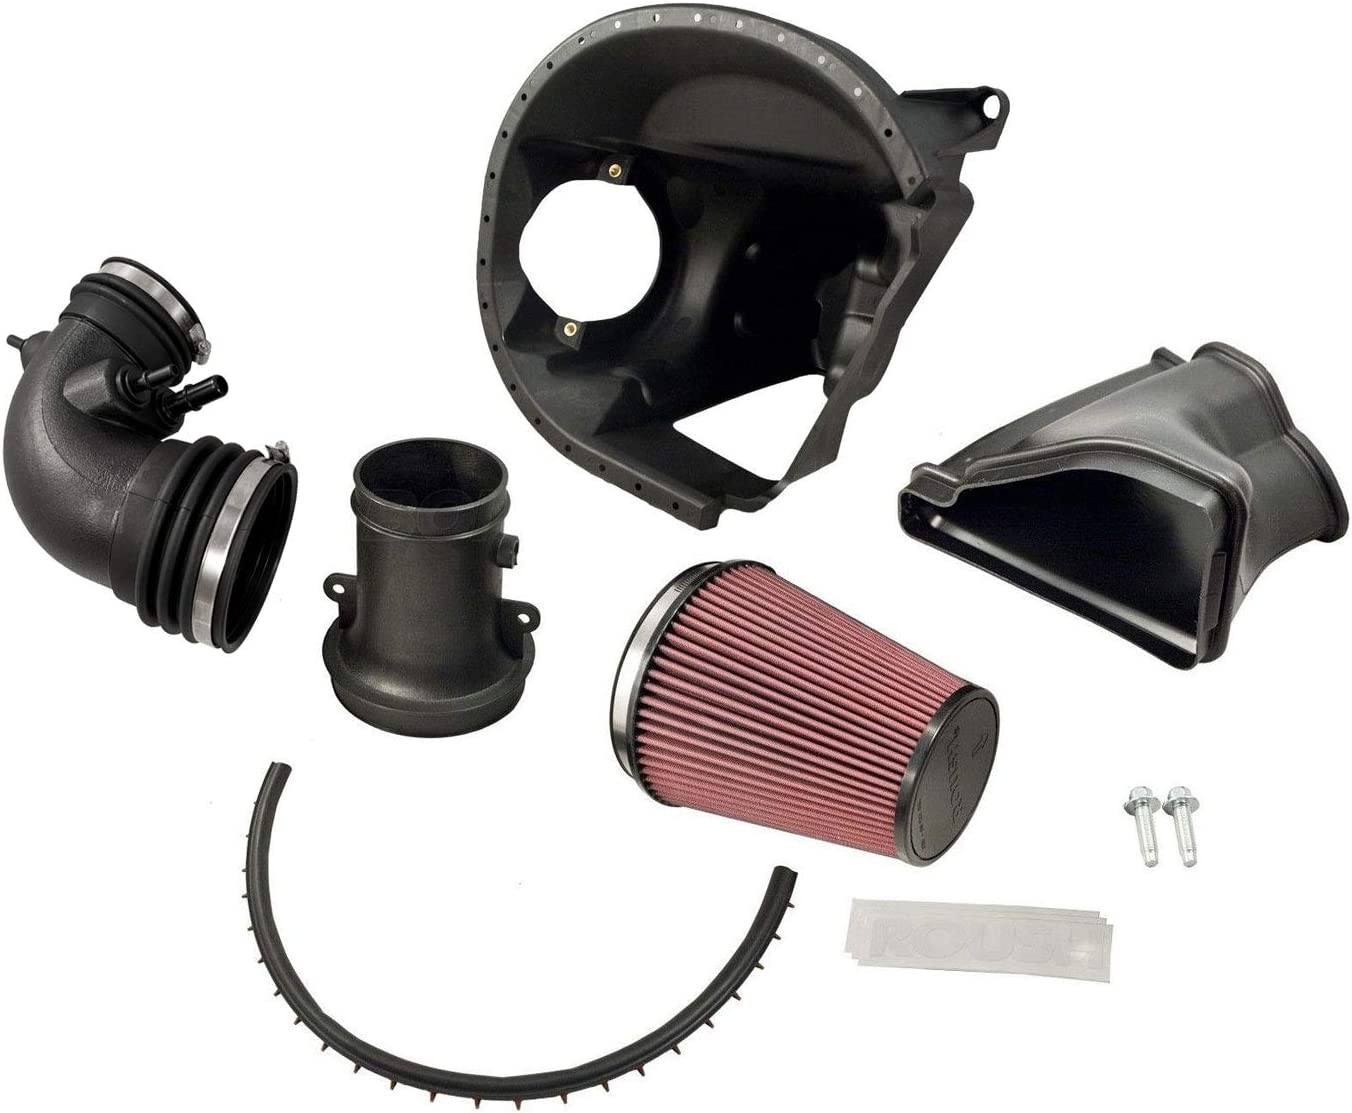 2015-2017 Roush Mustang GT 5.0 Cold Air Intake /& Axle Back Exhaust System Set